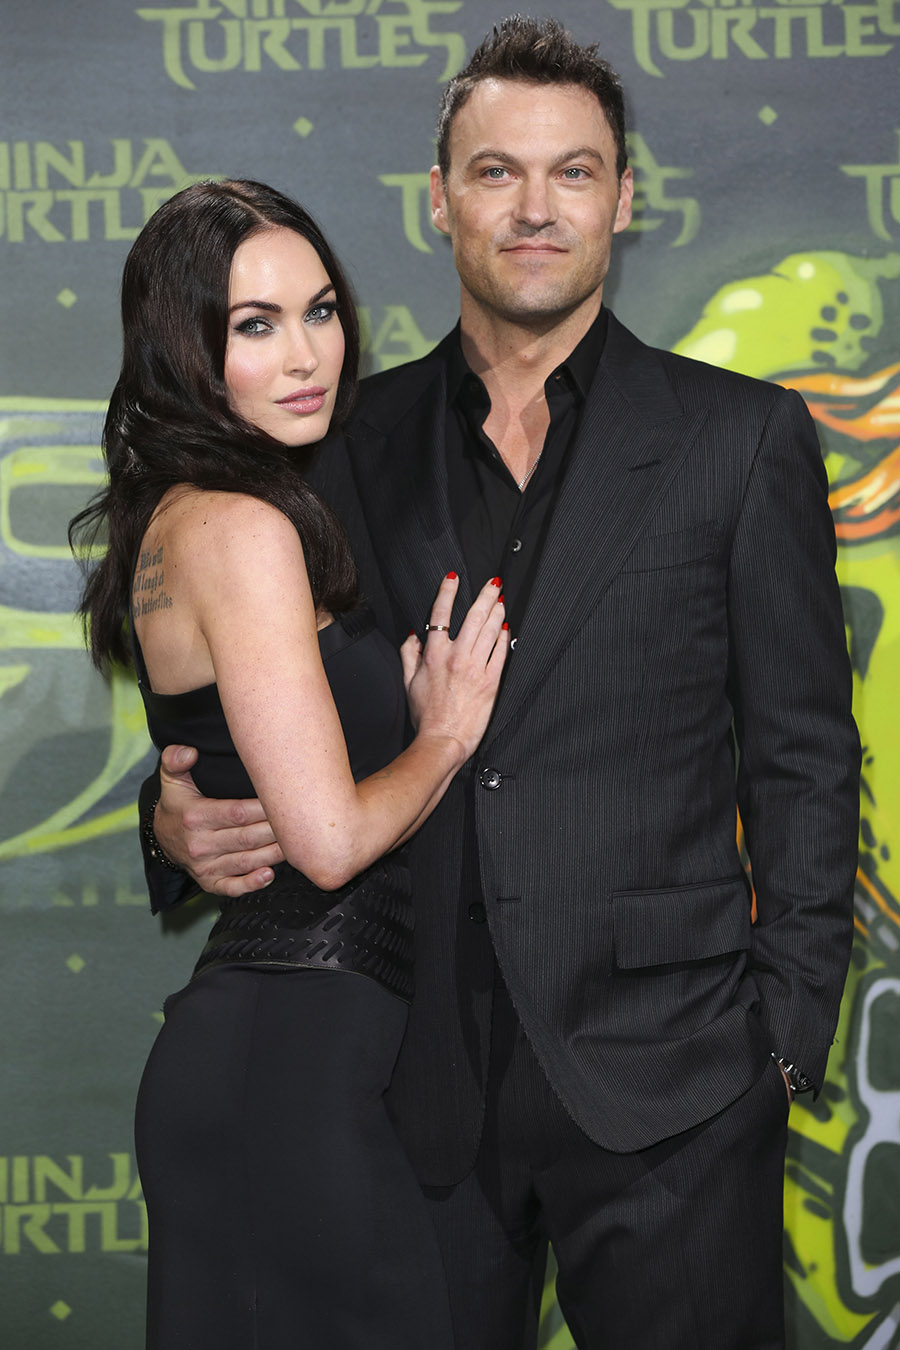 DL u265865 025. Megan Fox y Brian Austin Green